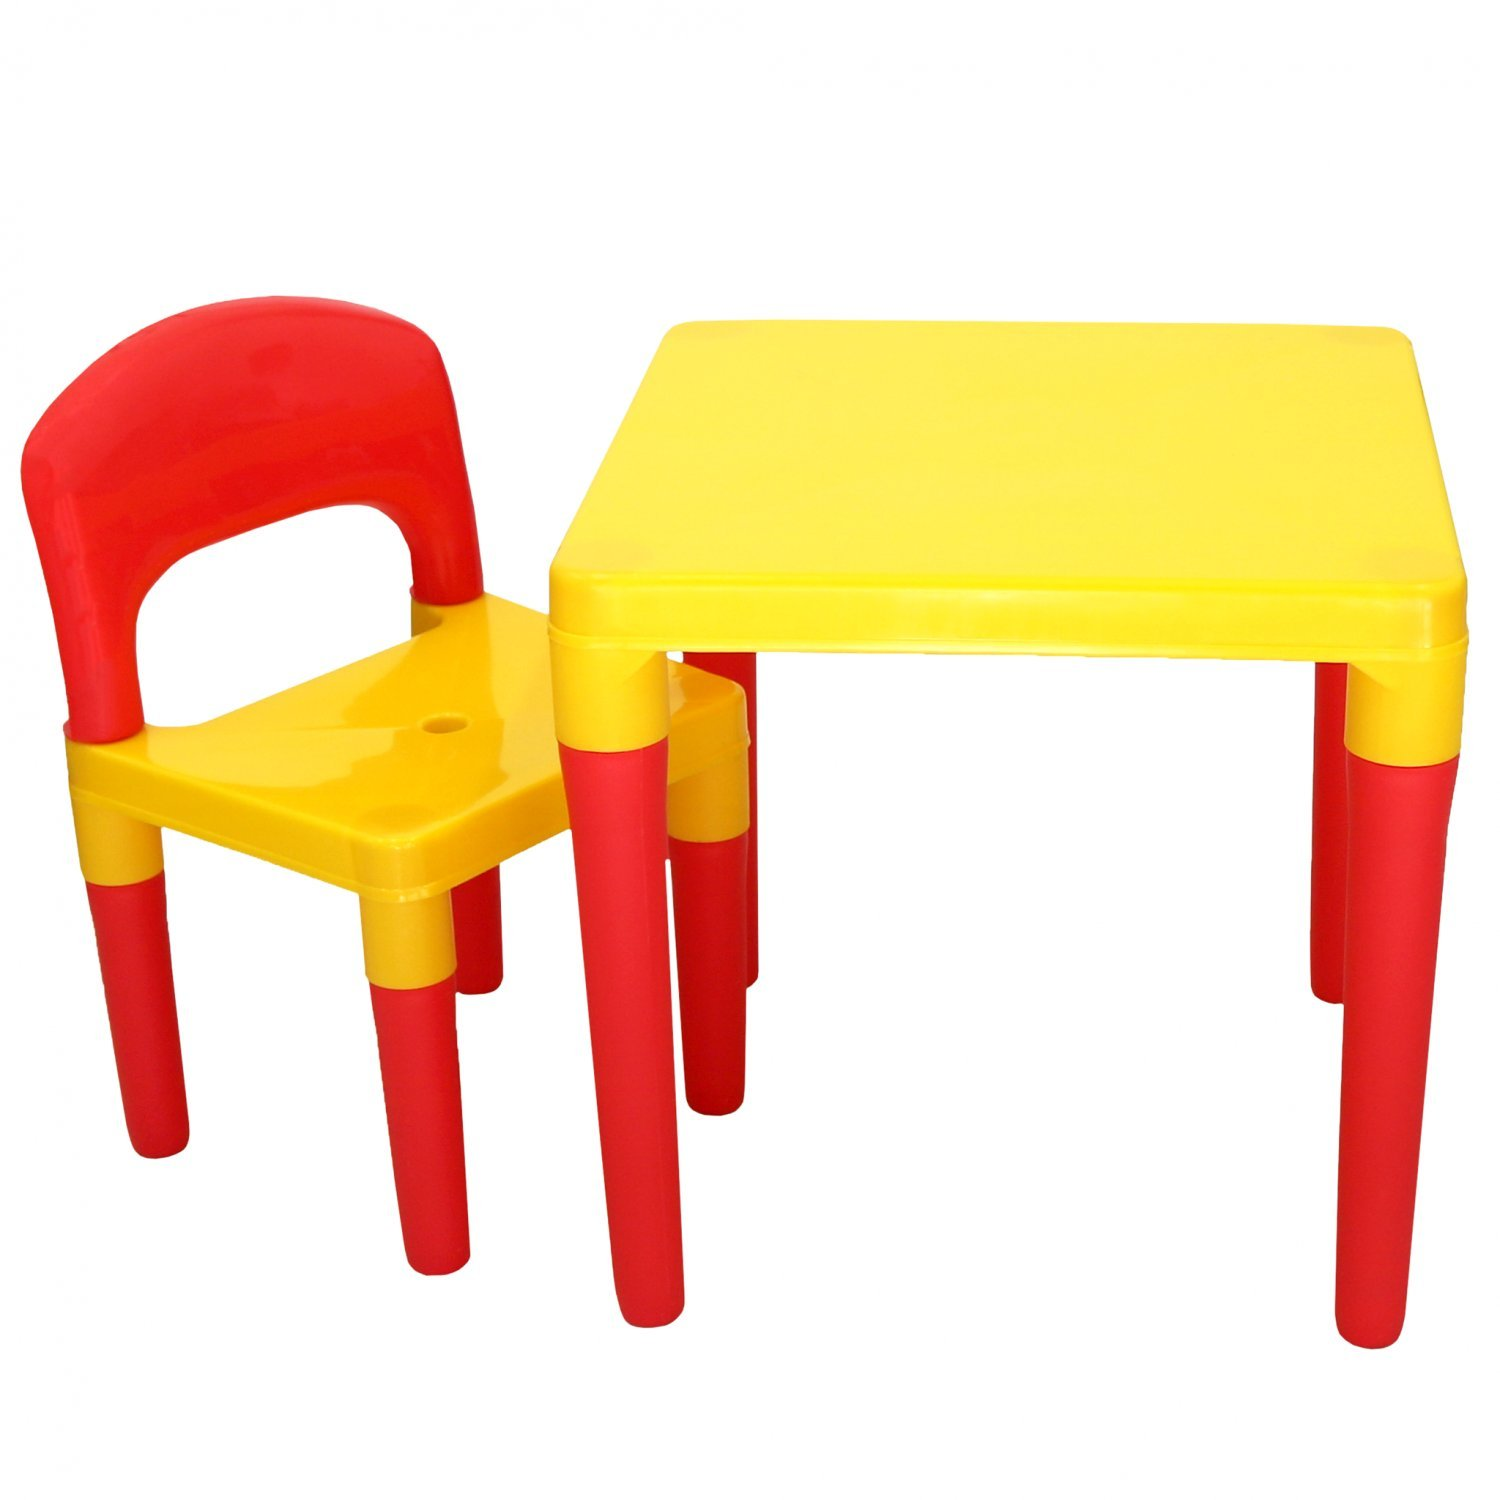 Kids Childrens Table Chair Furniture Set Bedroom Playroom 21 99 Oypla Stocking The Very Best In Toys Electrical Furniture Homeware Garden Gifts And Much More